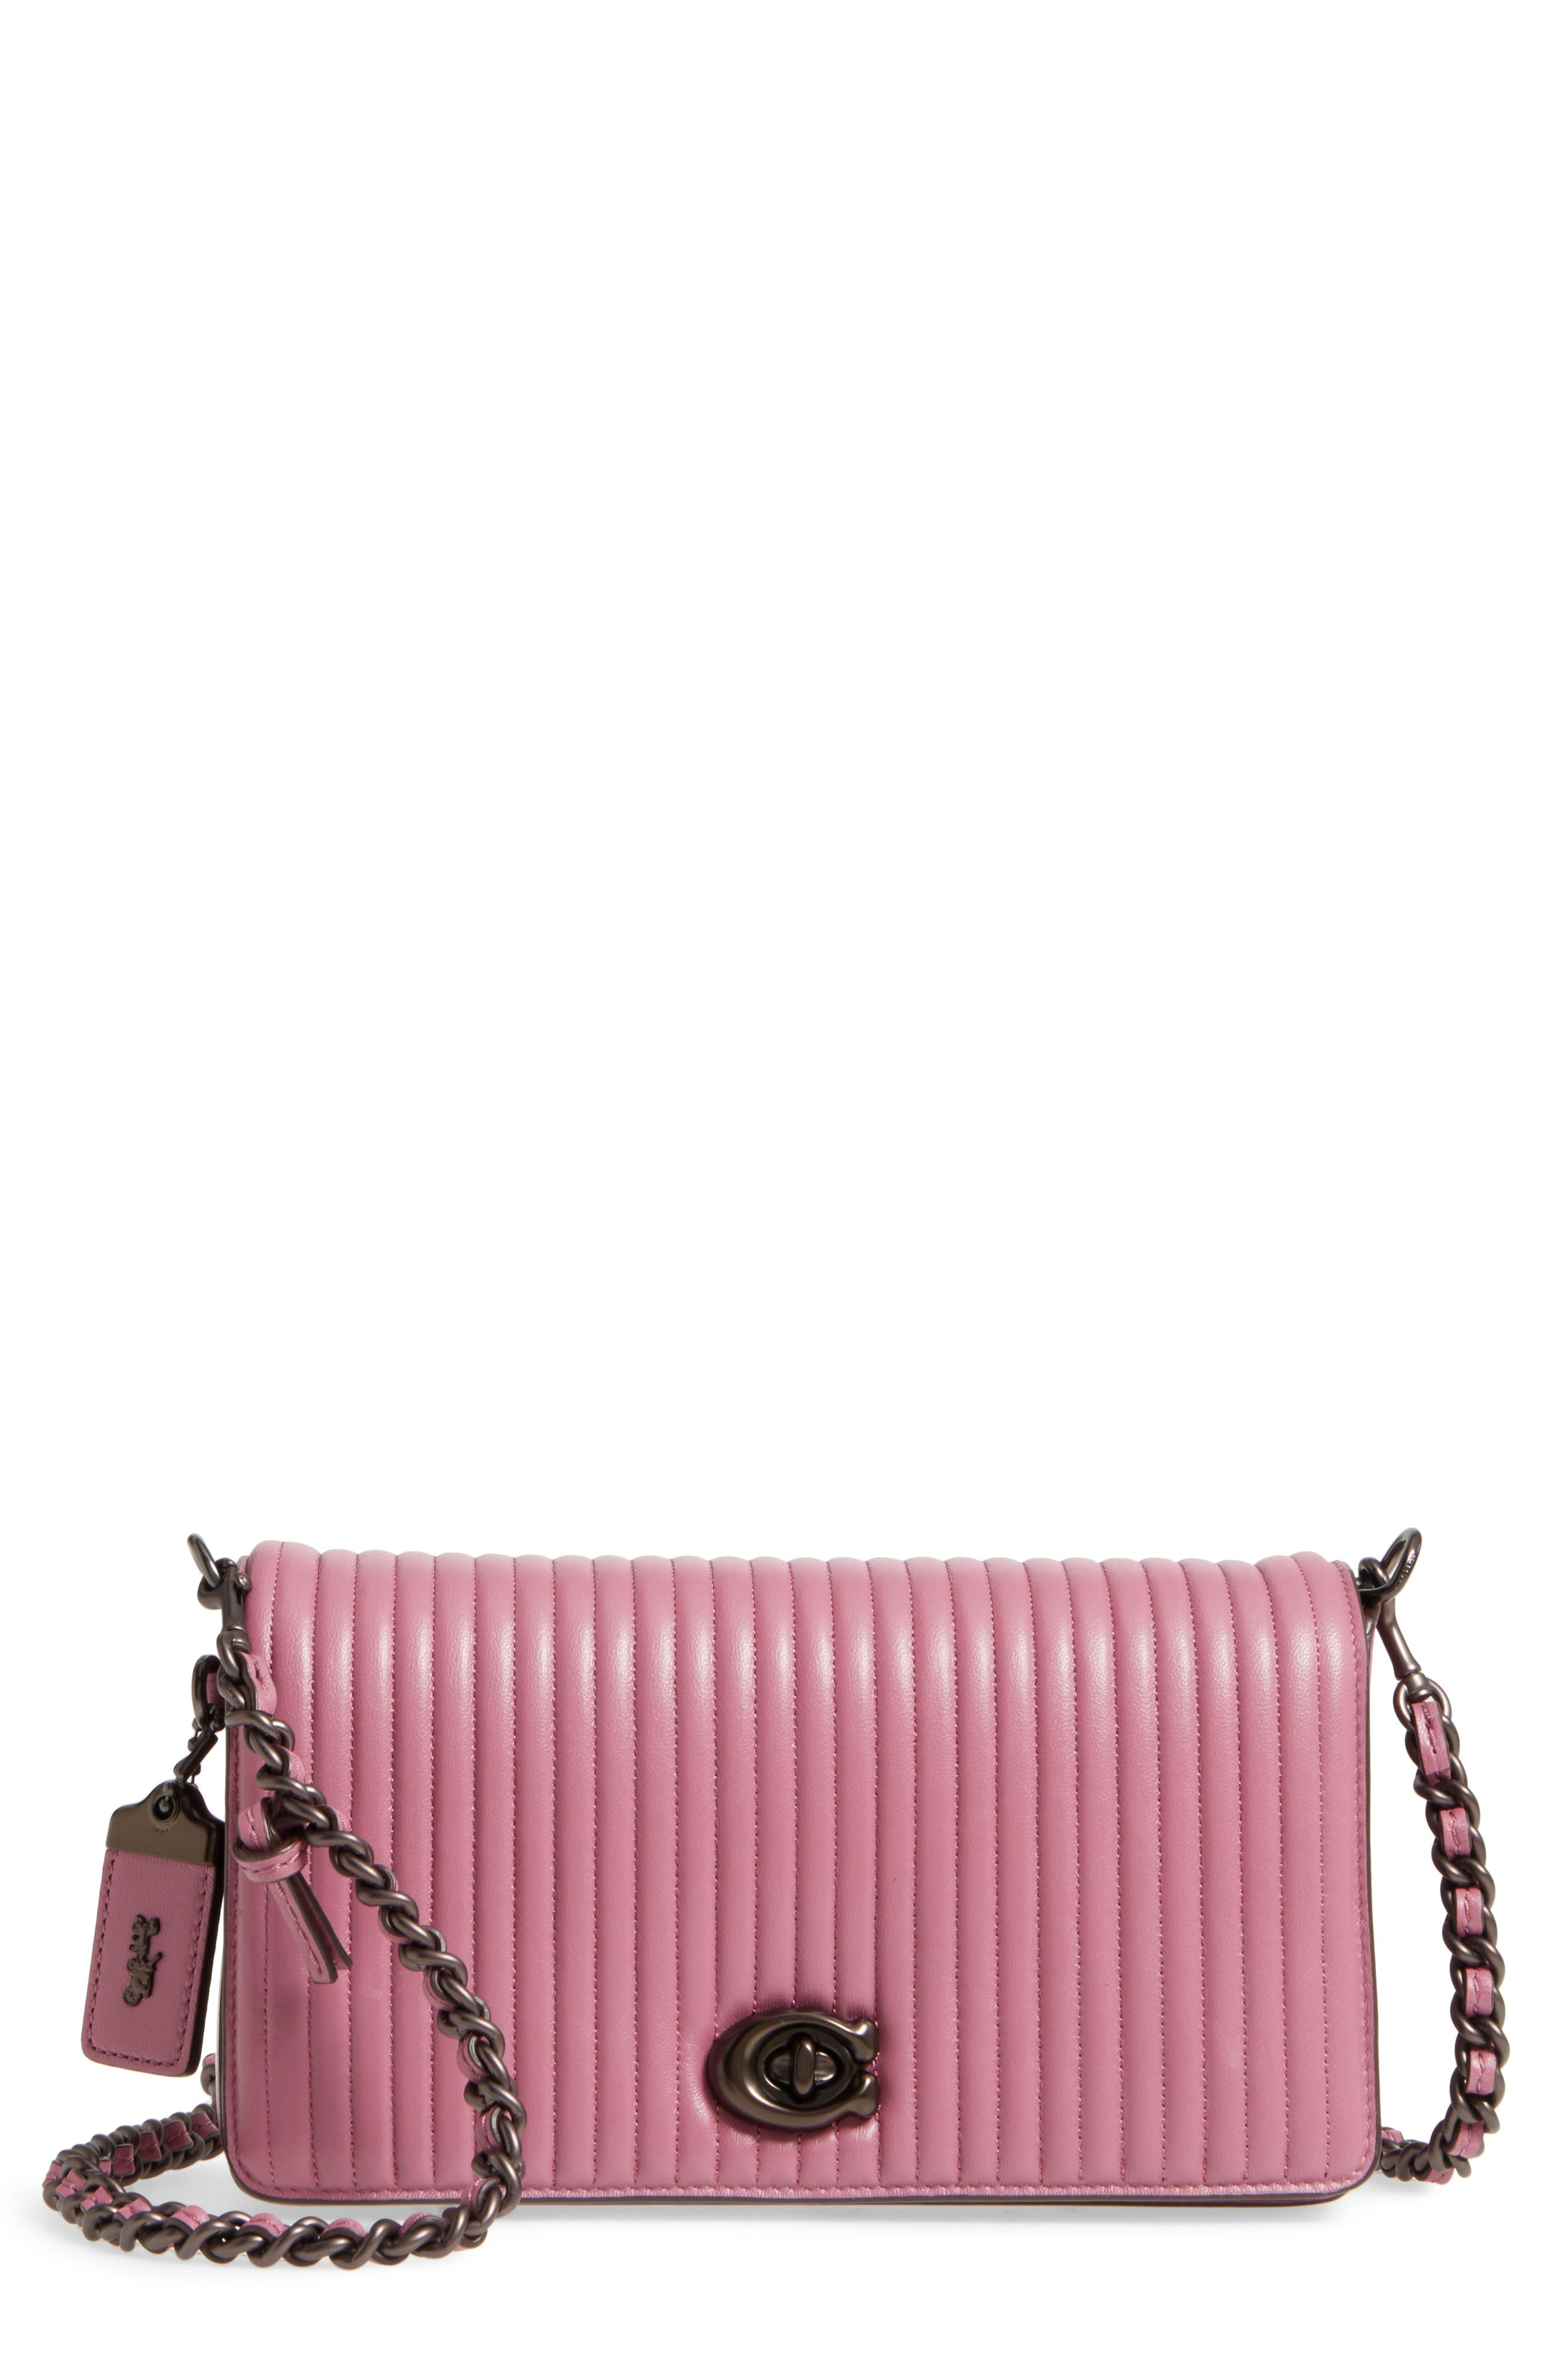 Main Image - COACH 1941 Dinky Quilted Leather Crossbody Bag